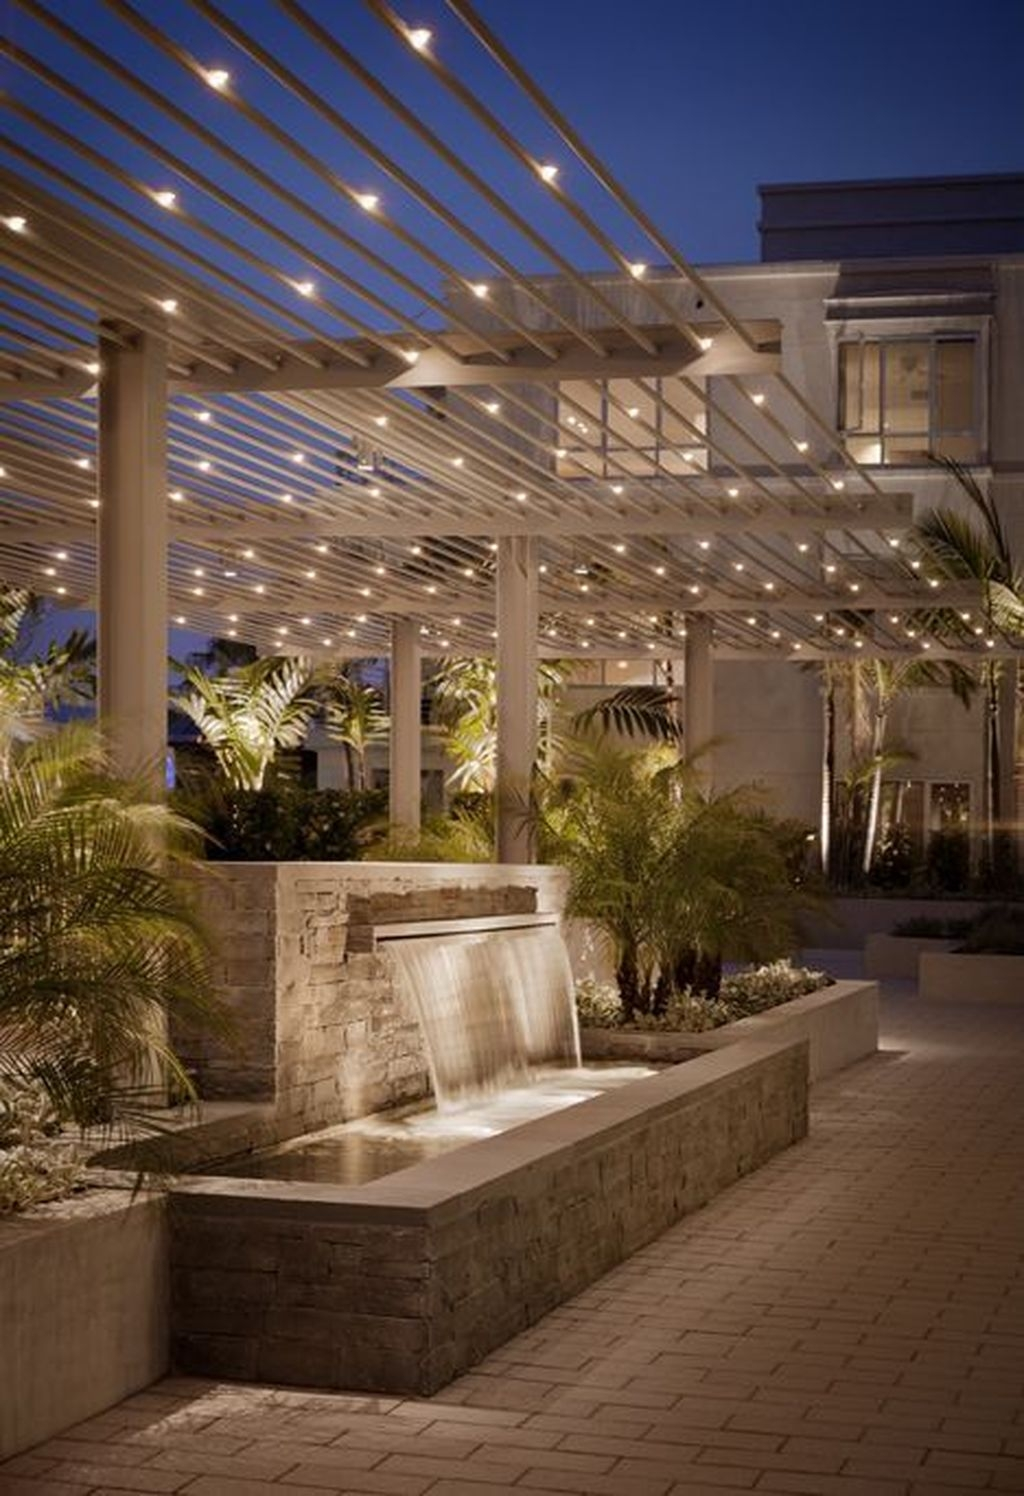 Affordable Water Features Design Ideas On A Budget 17